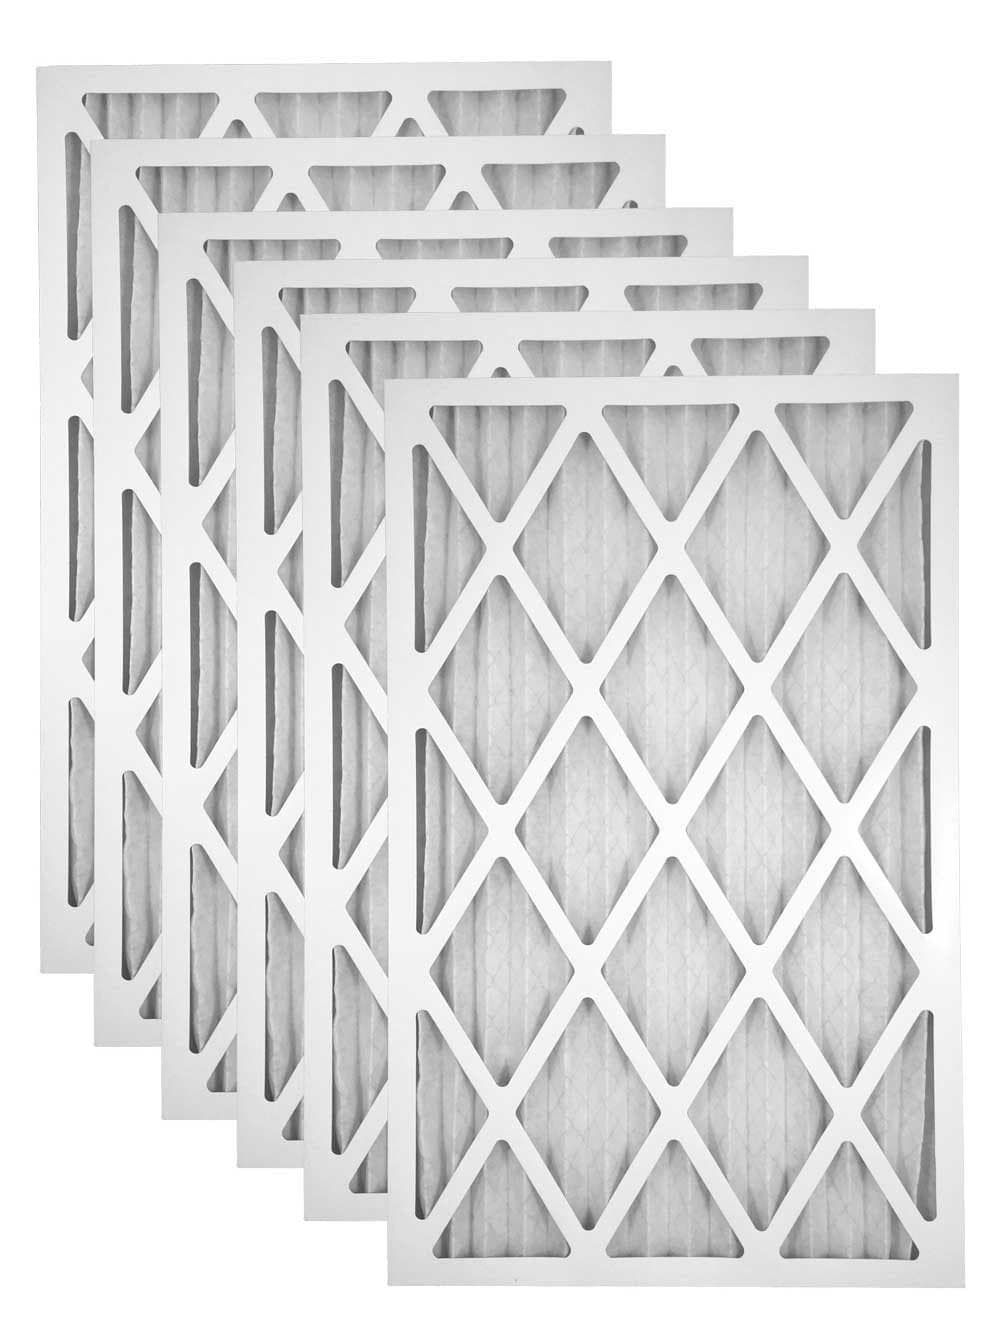 14x15.5x1 Merv 11 AC Furnace Filter - Case of 6